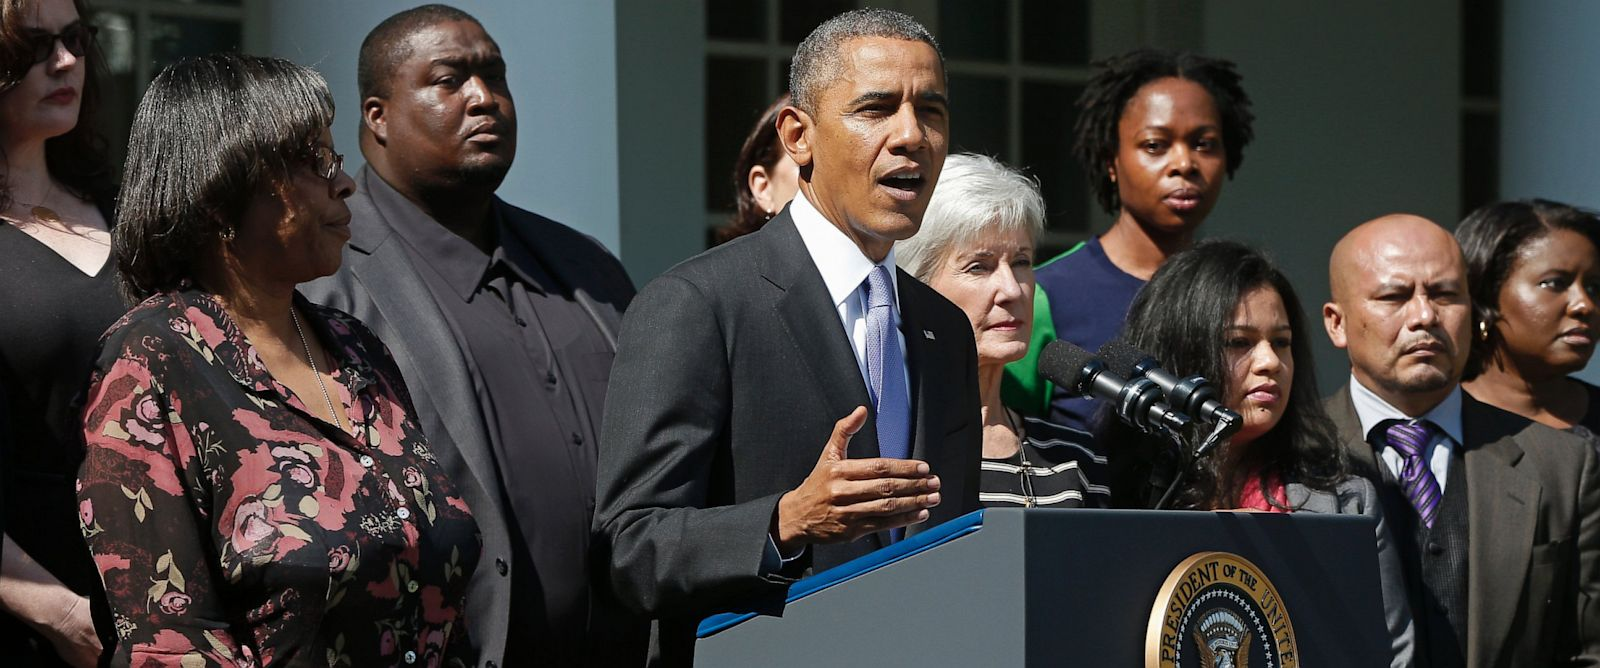 PHOTO: President Obama, HHS Secretary Kathleen Sebelius during press conference